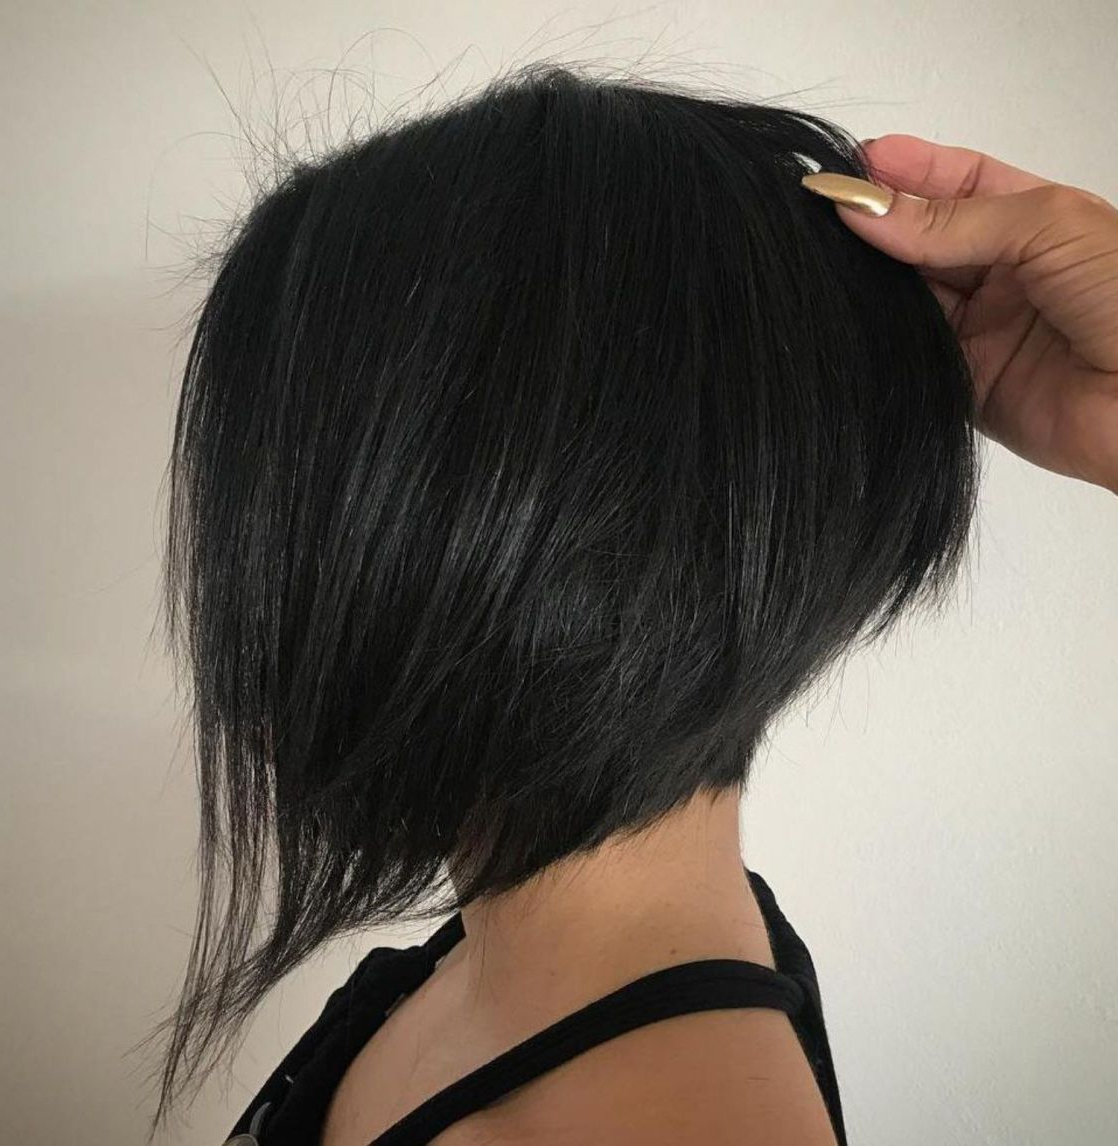 70 Cute And Easy To Style Short Layered Hairstyles In 2019 Within Steeply Angled Razored Asymmetrical Bob Hairstyles (Gallery 3 of 20)